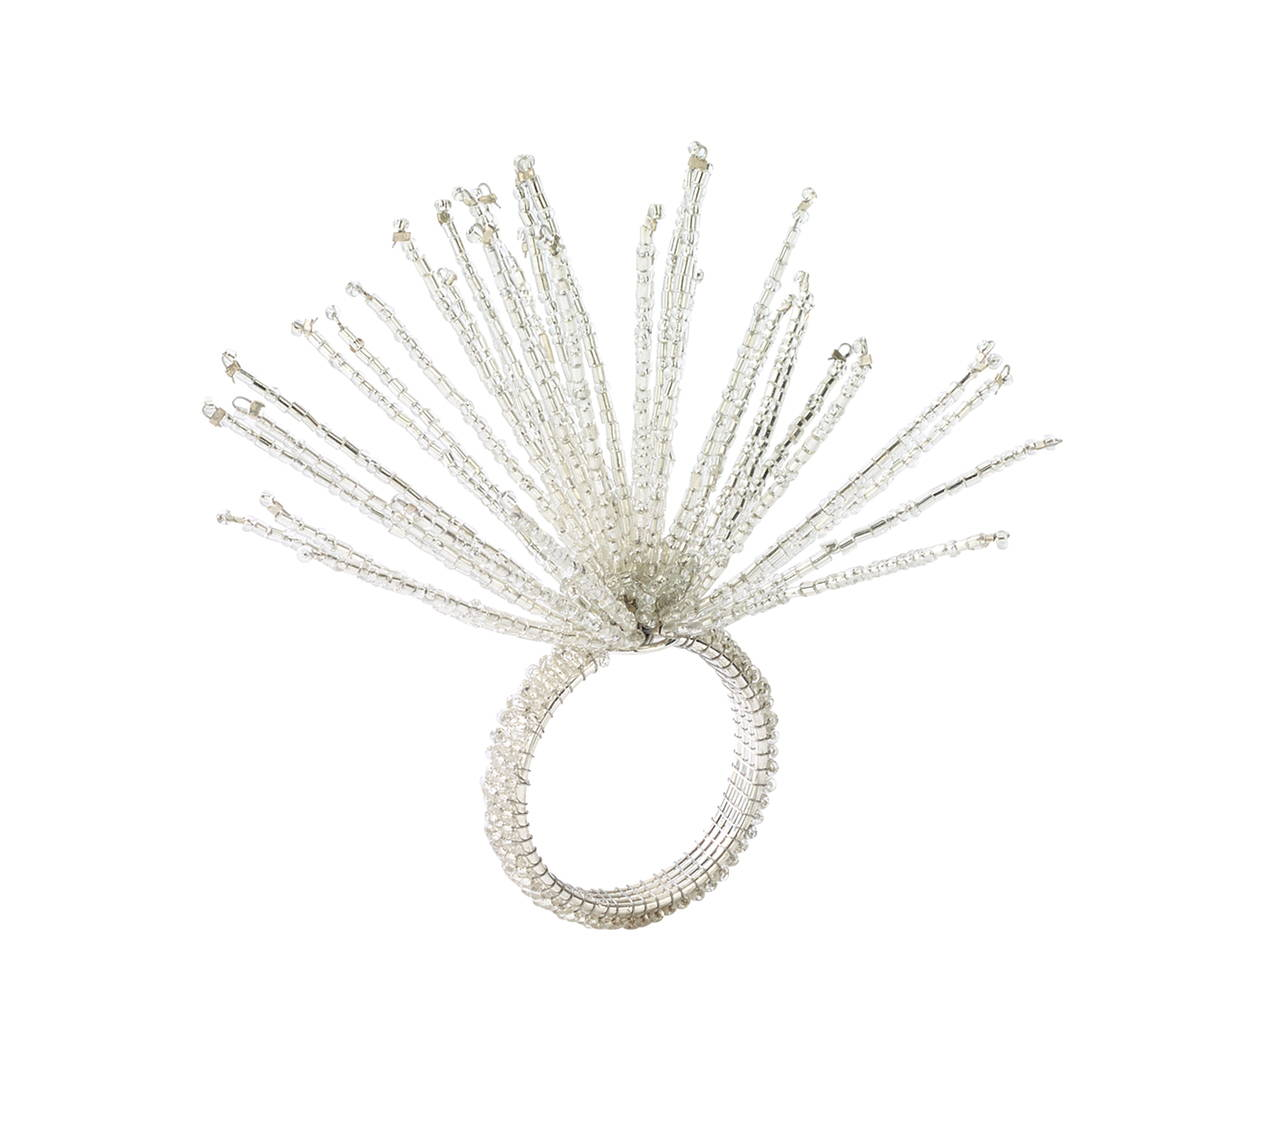 SPIDER BEAD BURST NAPKIN RING IN CRYSTAL & SILVER